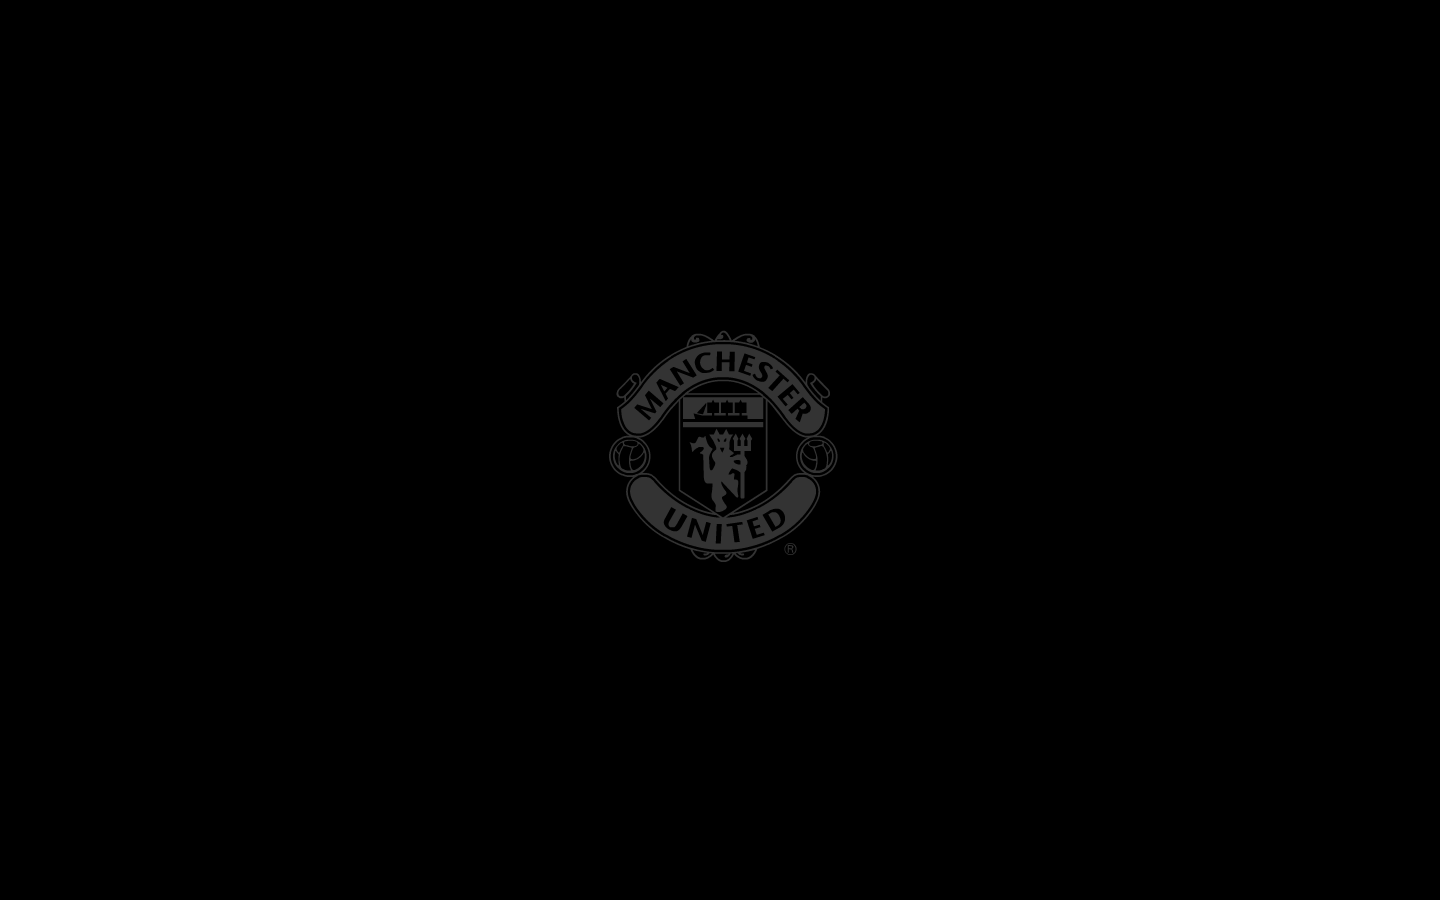 manchester united logo black and white posted by michelle johnson manchester united logo black and white